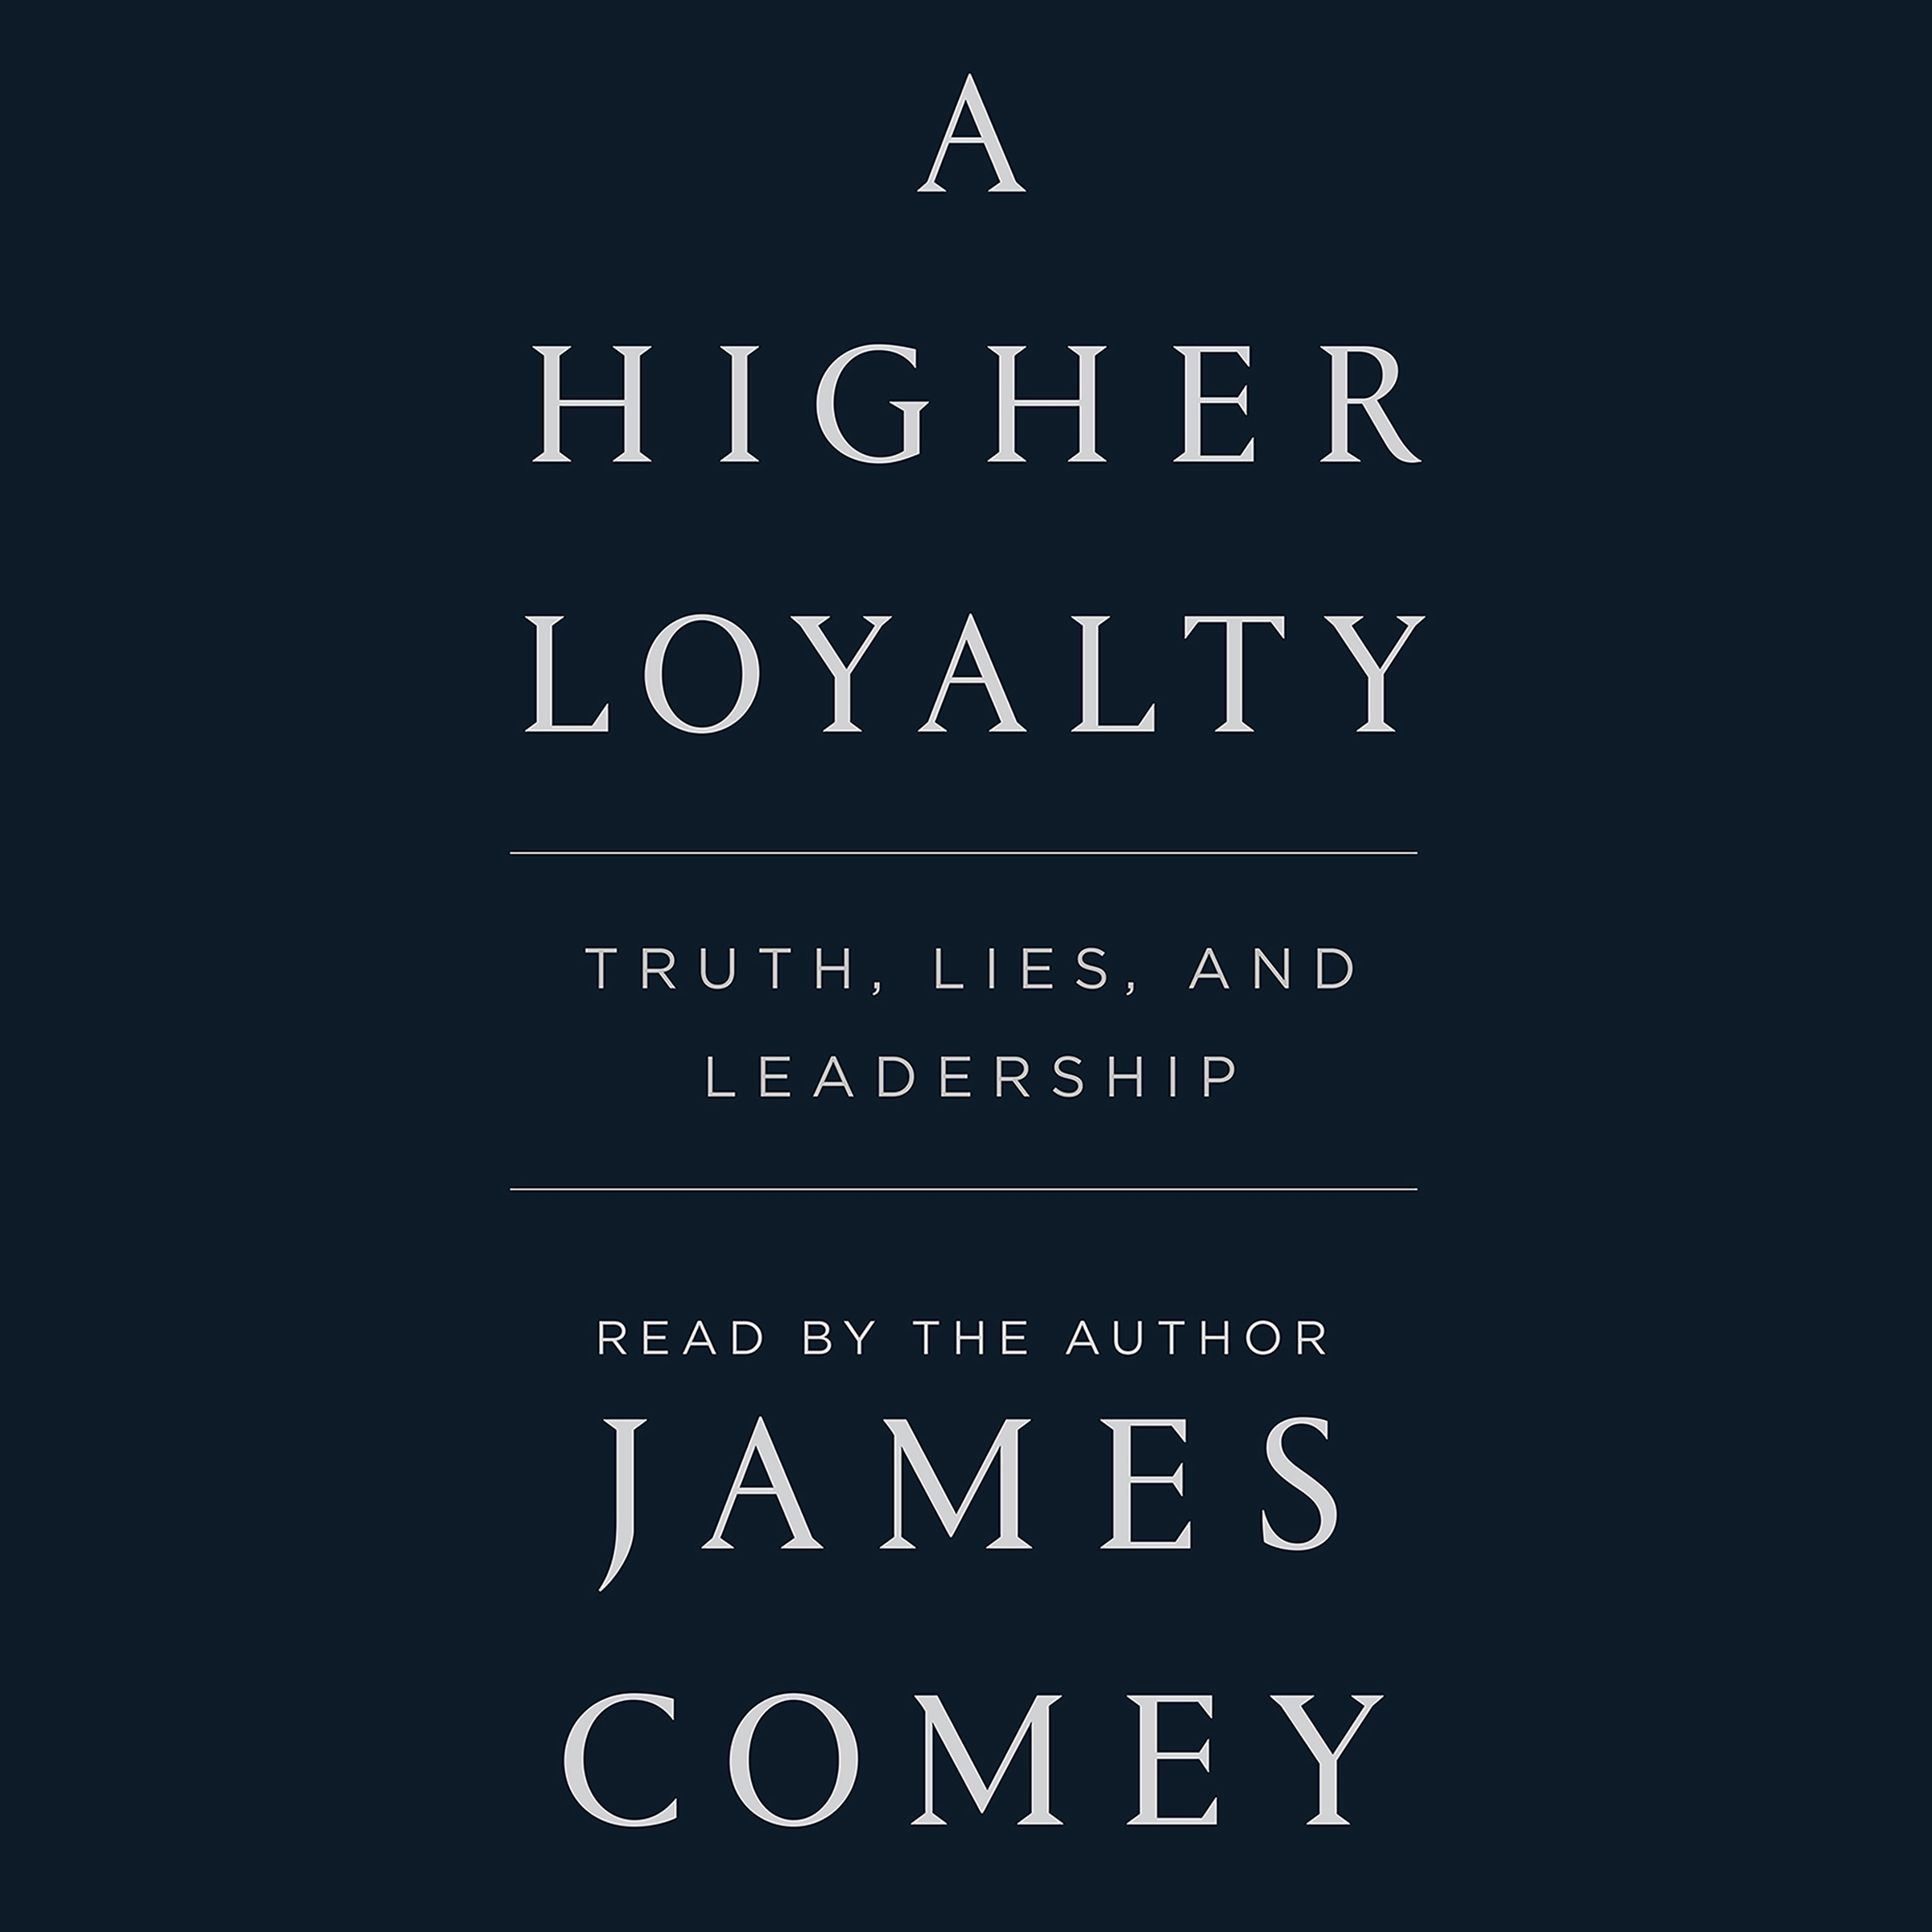 A Higher Loyalty.